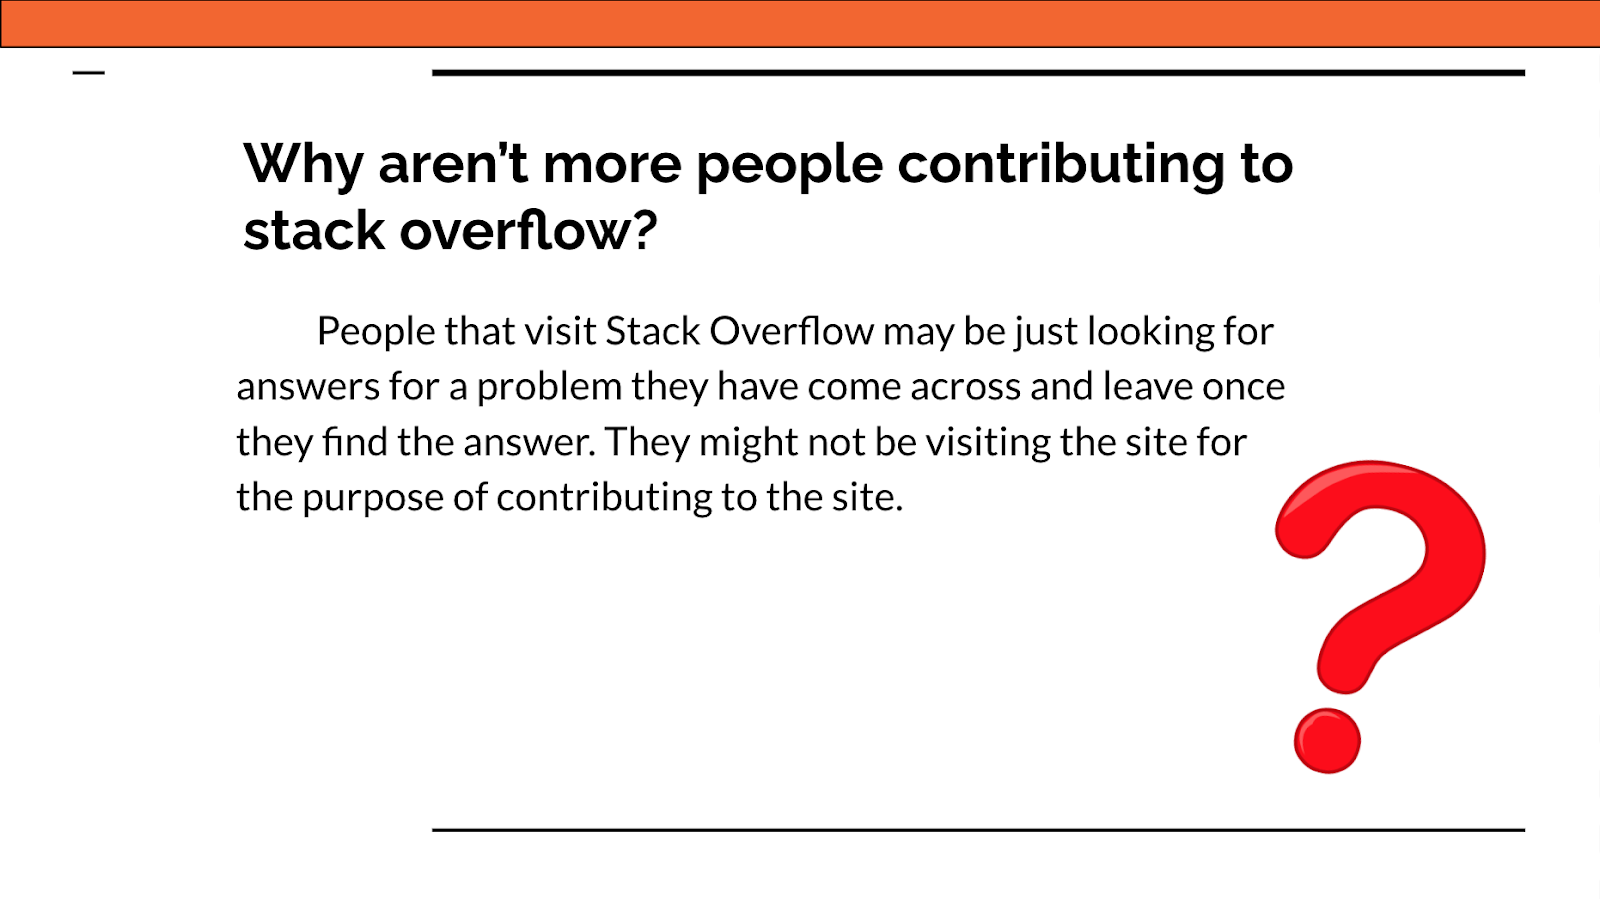 Why aren't more people contributing to Stack Overflow? People that visit Stack Overflow may be just looking for answers for a problem they have come across and leave once they find they answer. They might not be visiting the site for the purpose of contributing to the site.